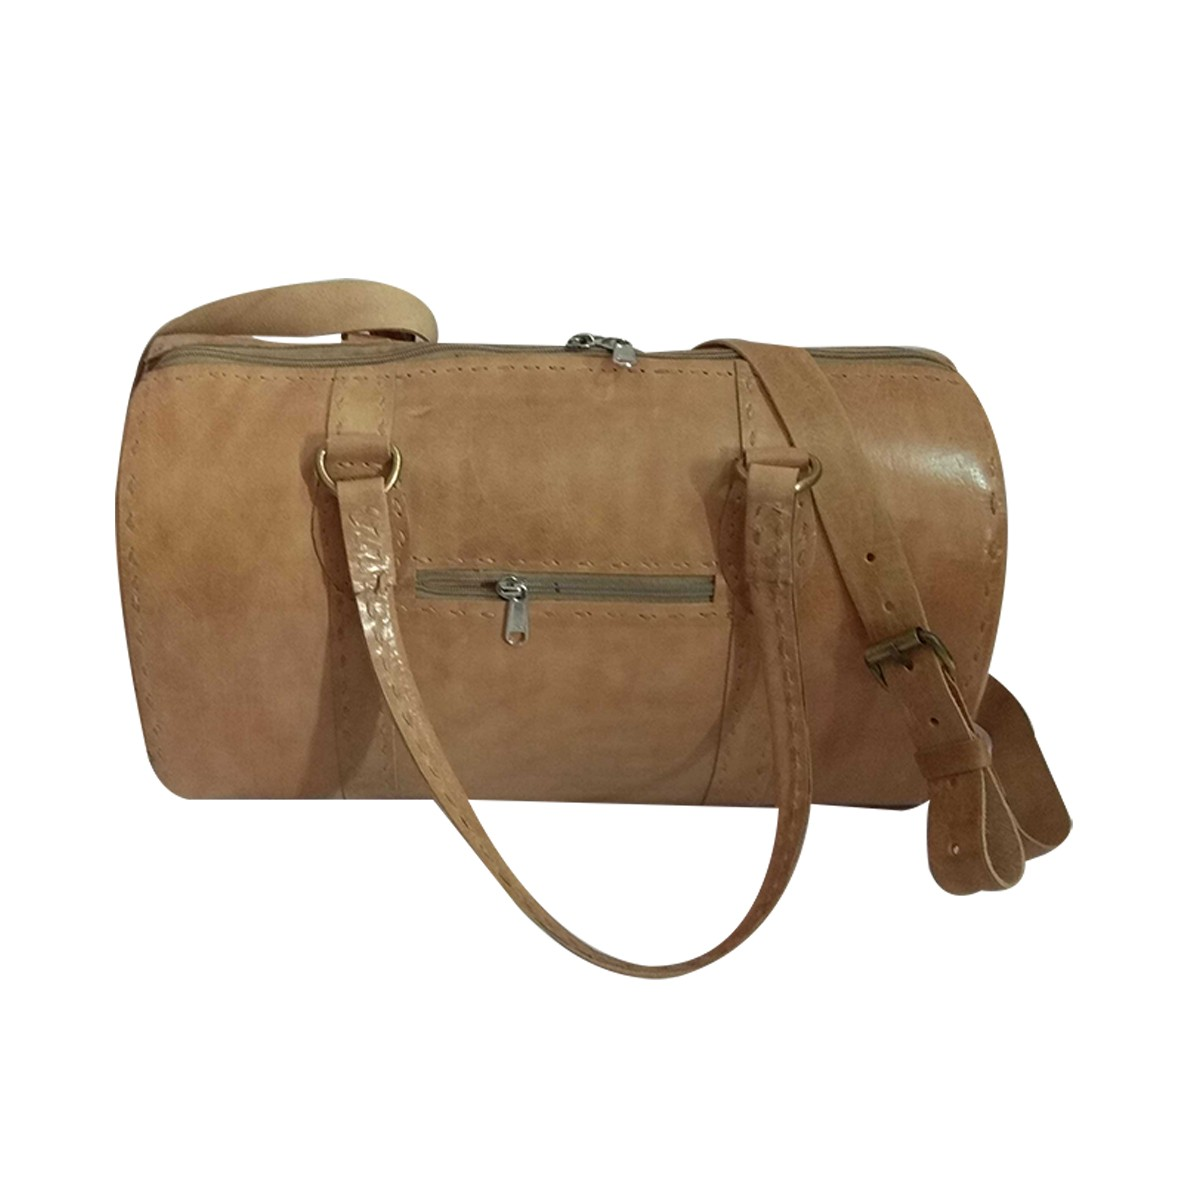 Handmade Beige Genuine Leather Vintage Travel Bag (Leather Weekend bag) by Rural Artisans